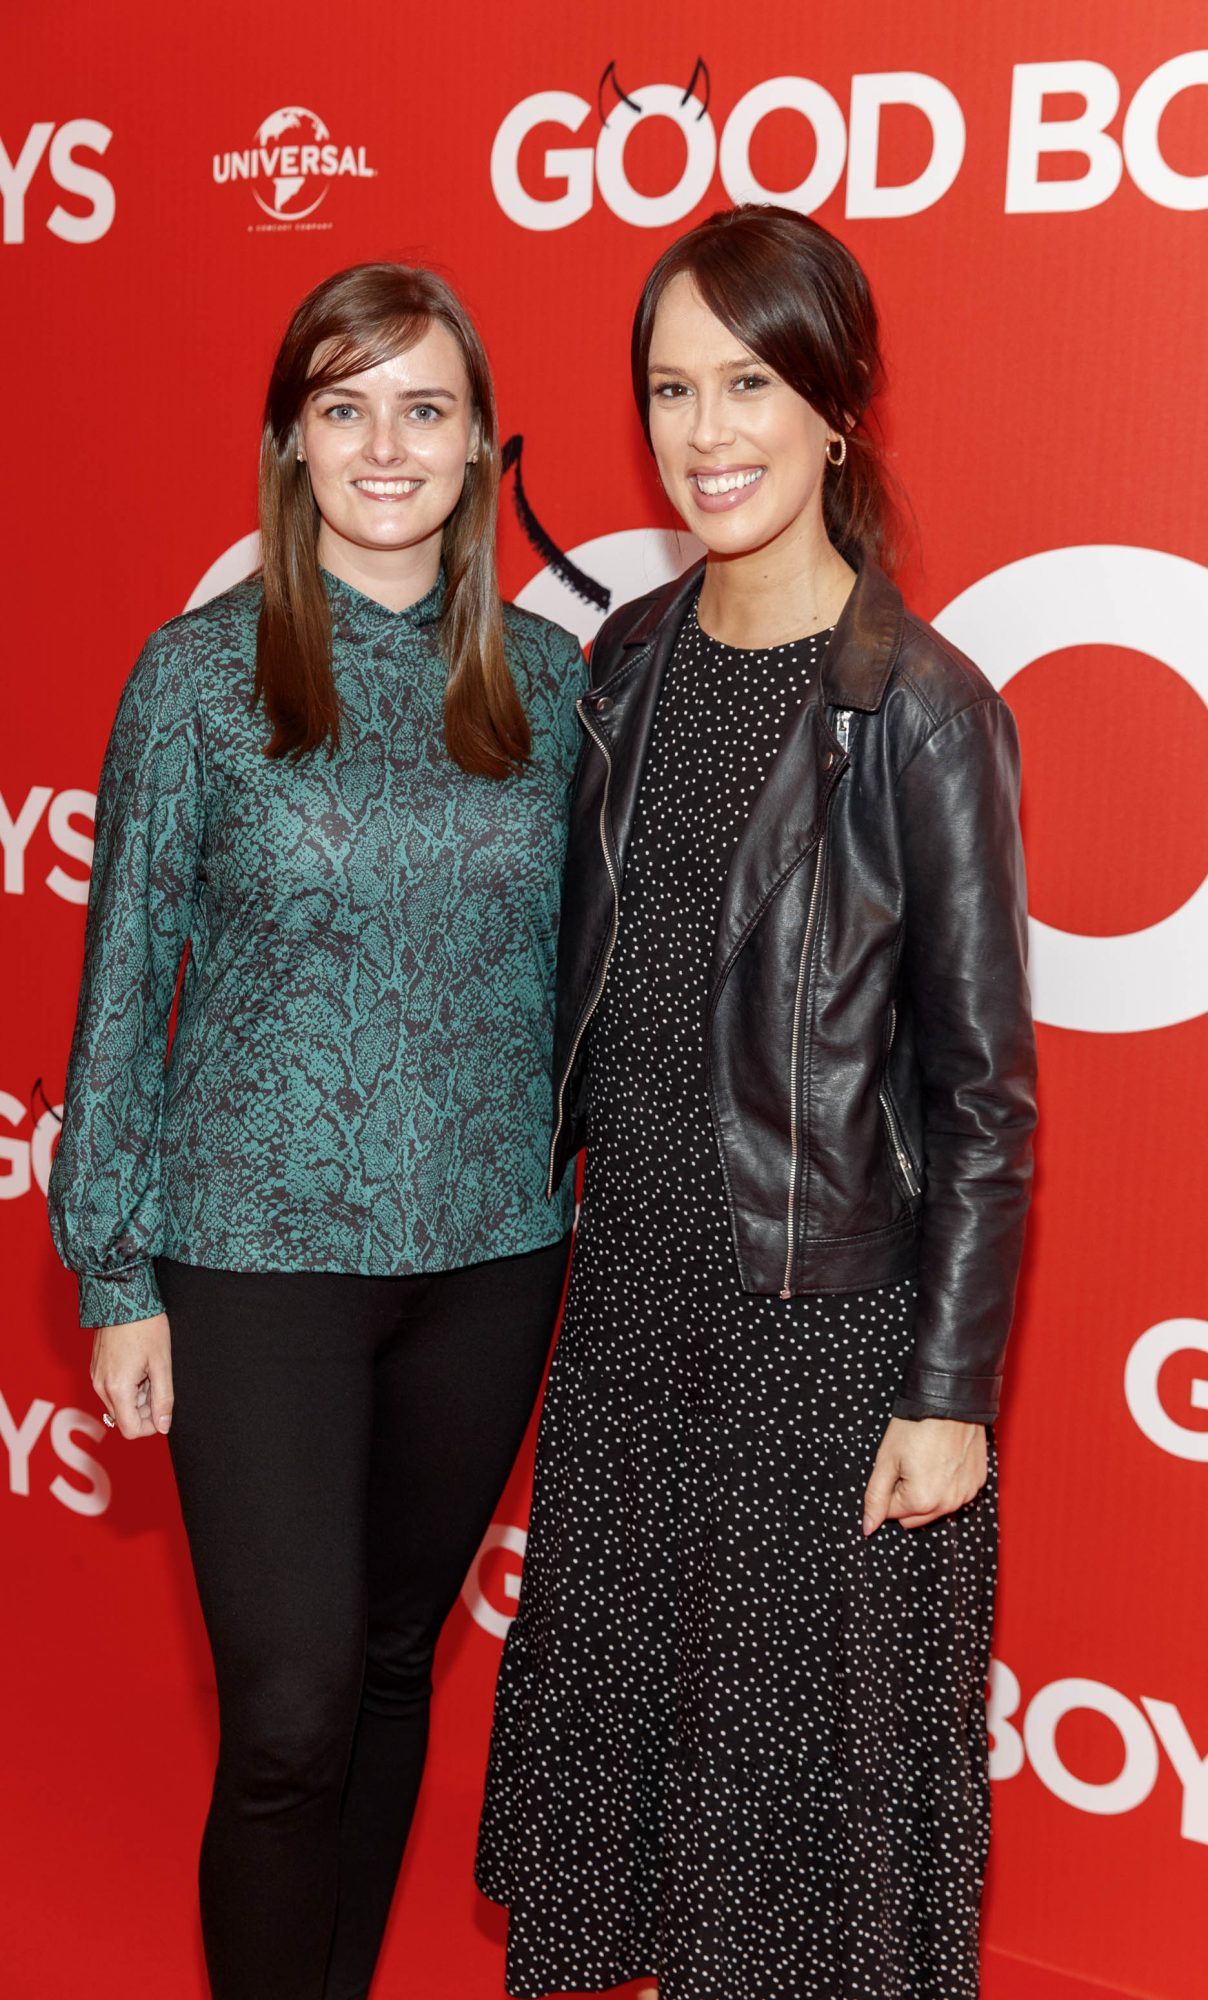 Aileen Gaskin and Catherine O'Connor pictured at a special preview screening of Good Boys at the Light House Cinema, Dublin. Picture: Andres Poveda